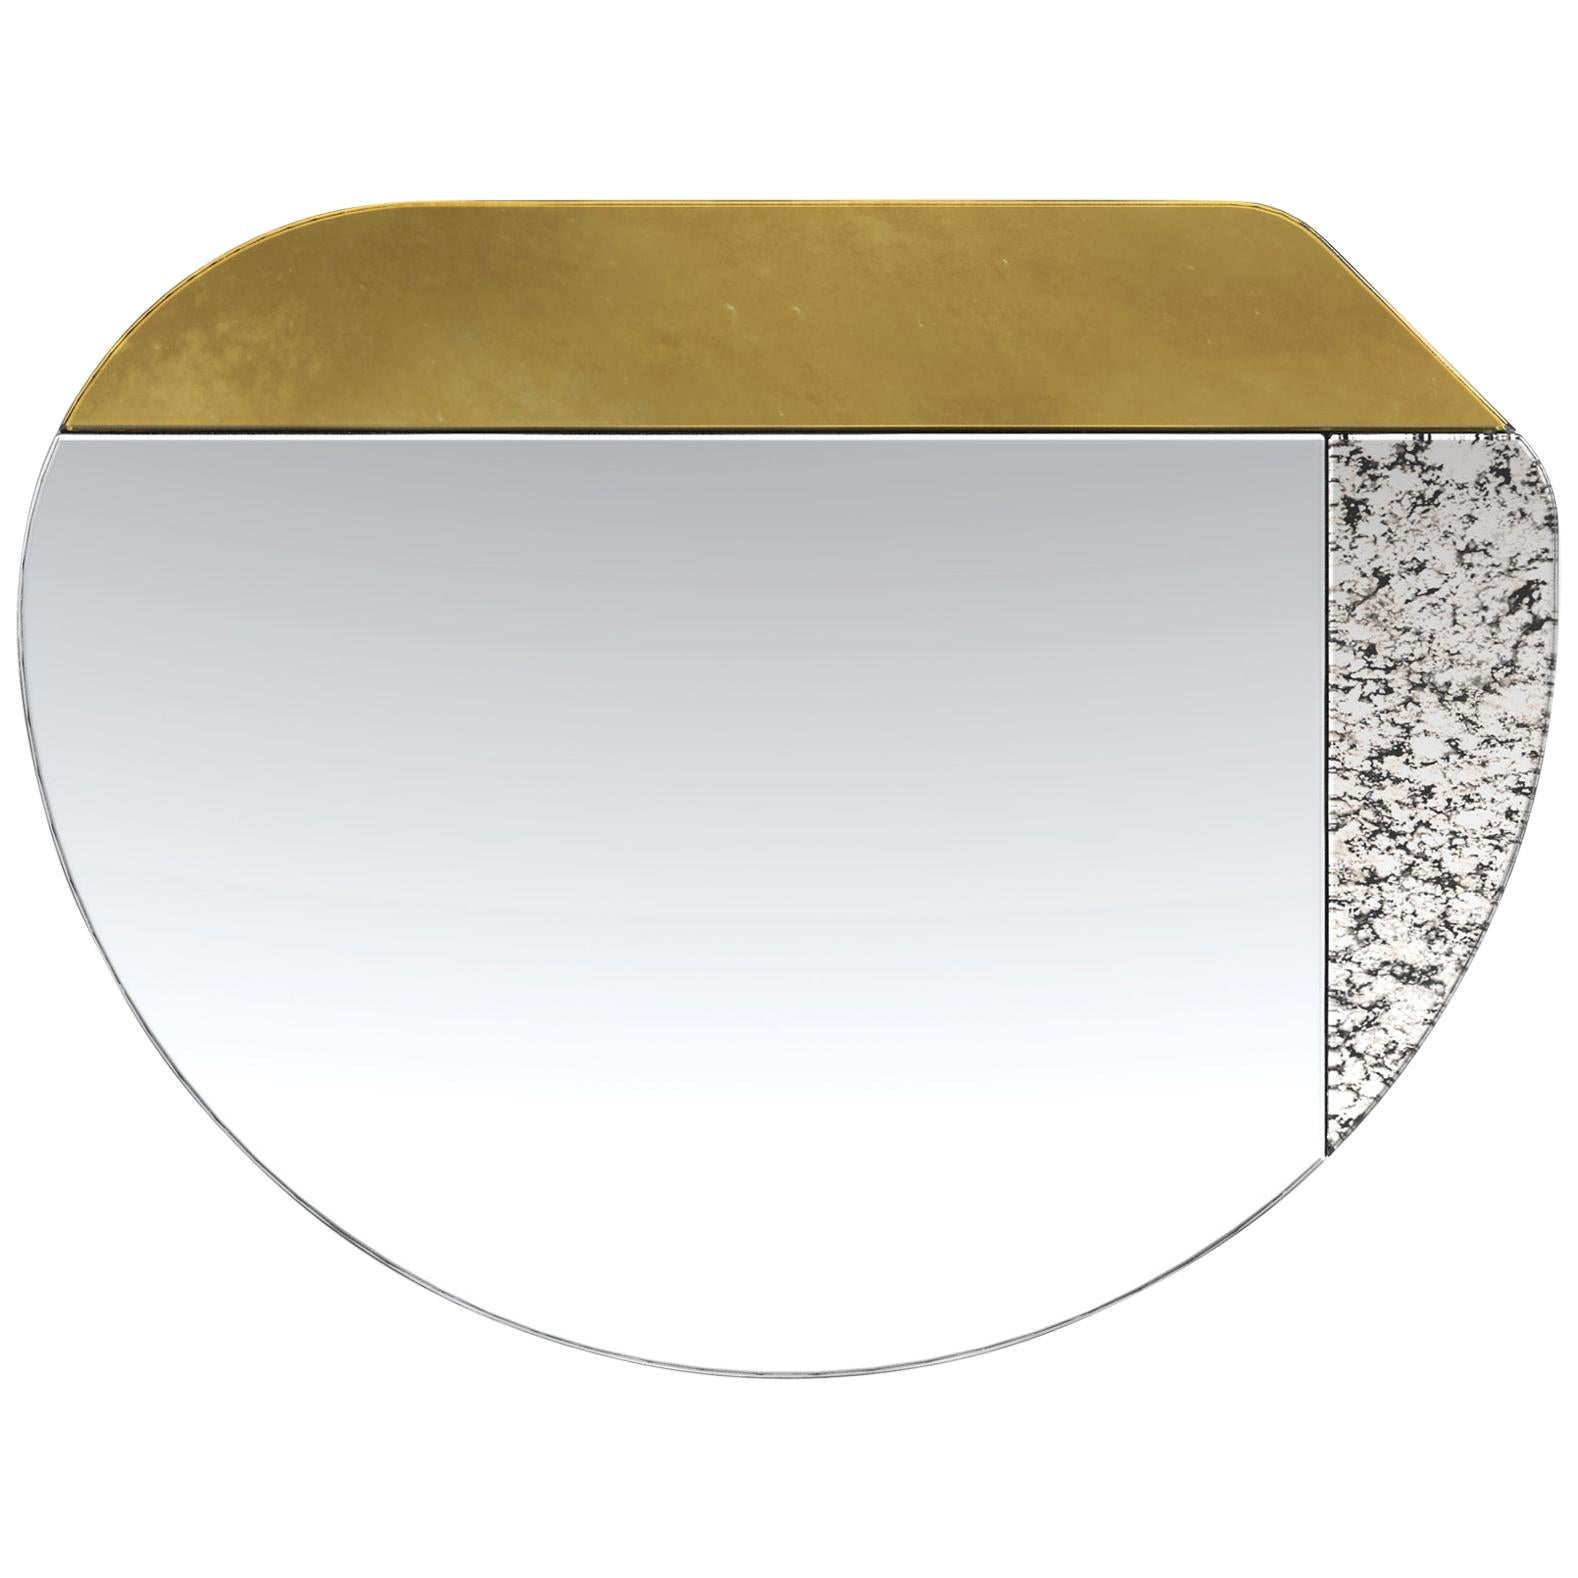 Gold and Speckled WG.C1.E Hand-Crafted Wall Mirror